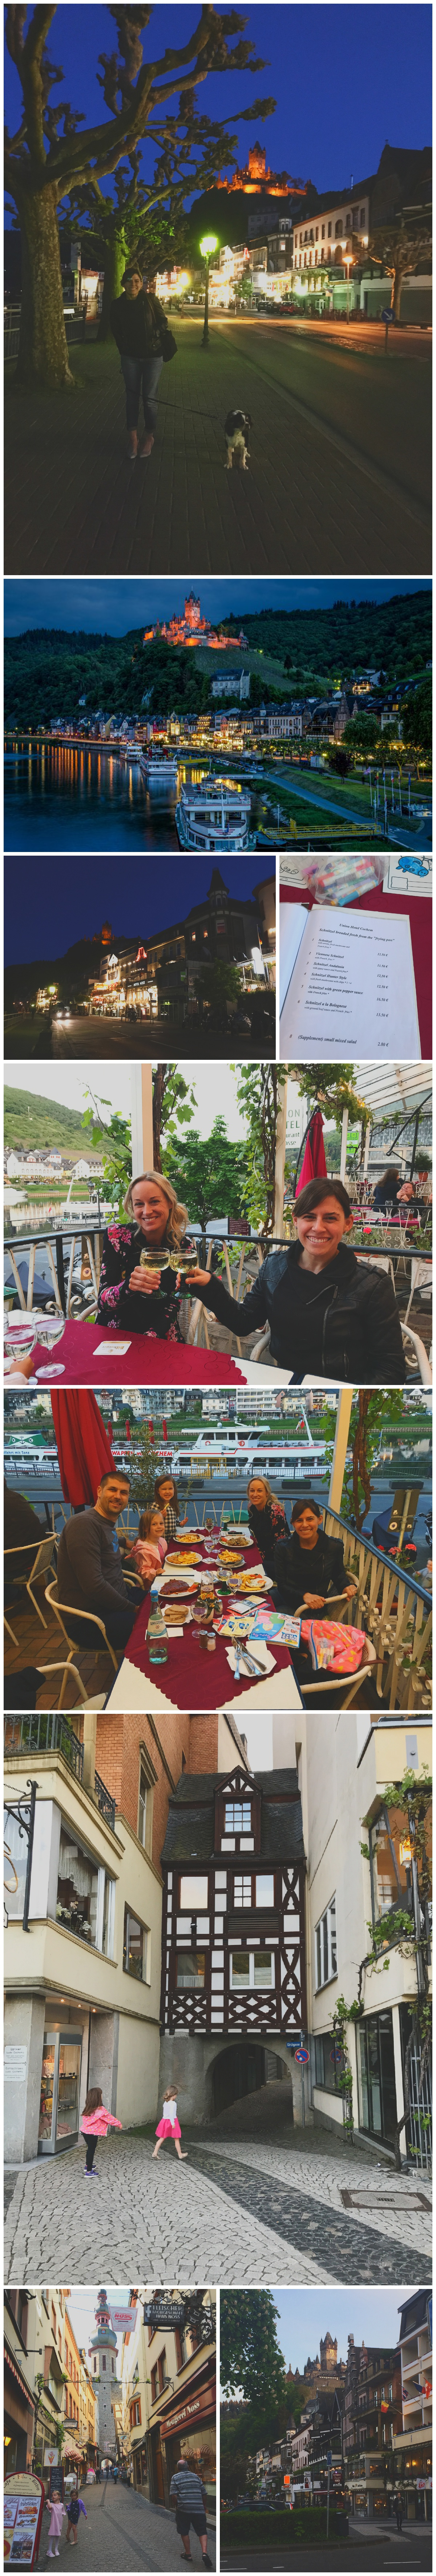 hotel with castle view Mosel cochem Germany